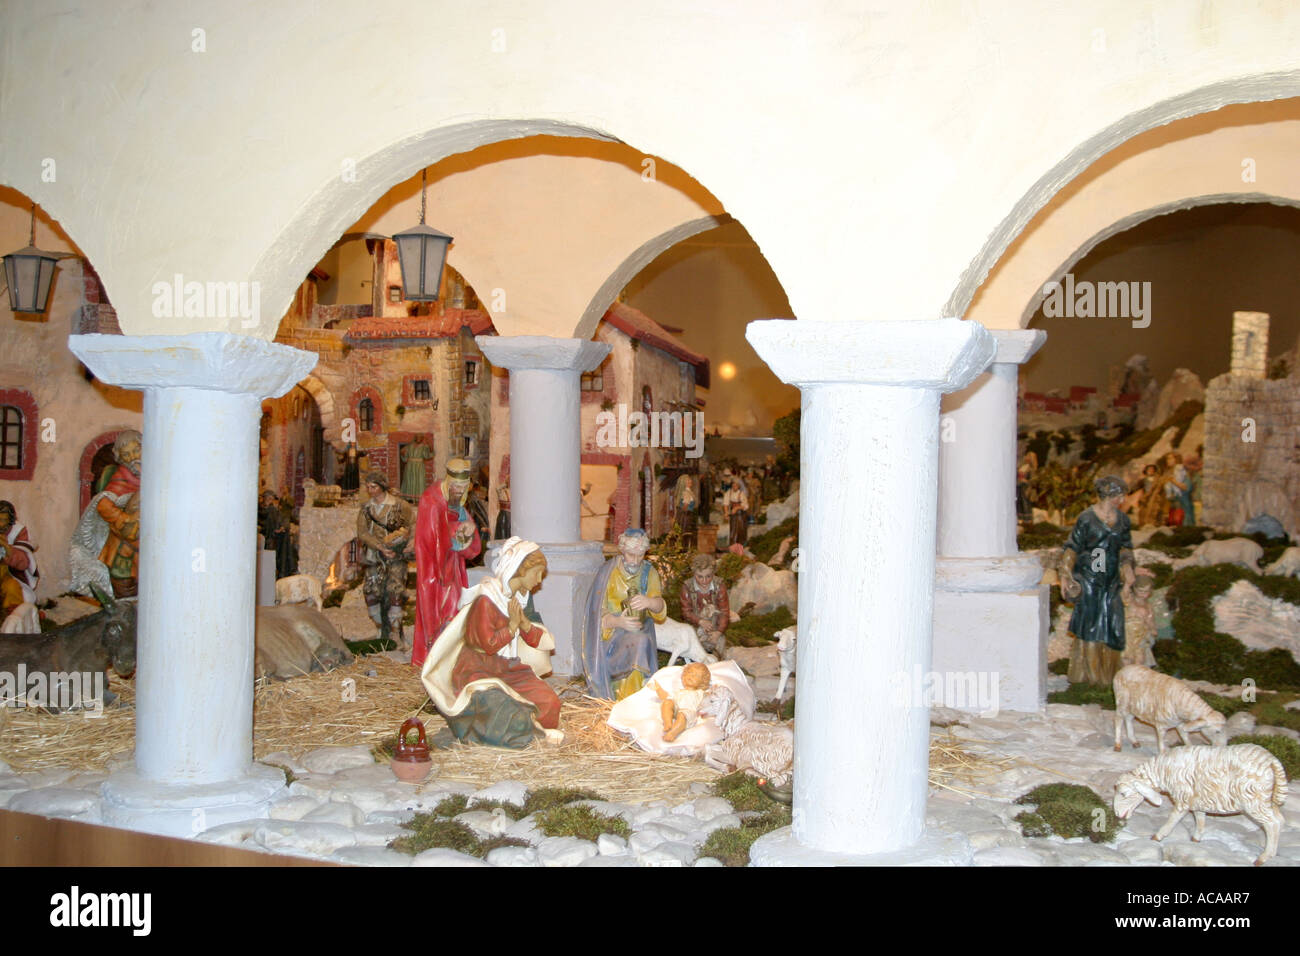 "Spectacular nativity scene in the historic Church of St Nicholas in Tolentino ,""le Marche"", Italy Stock Photo"